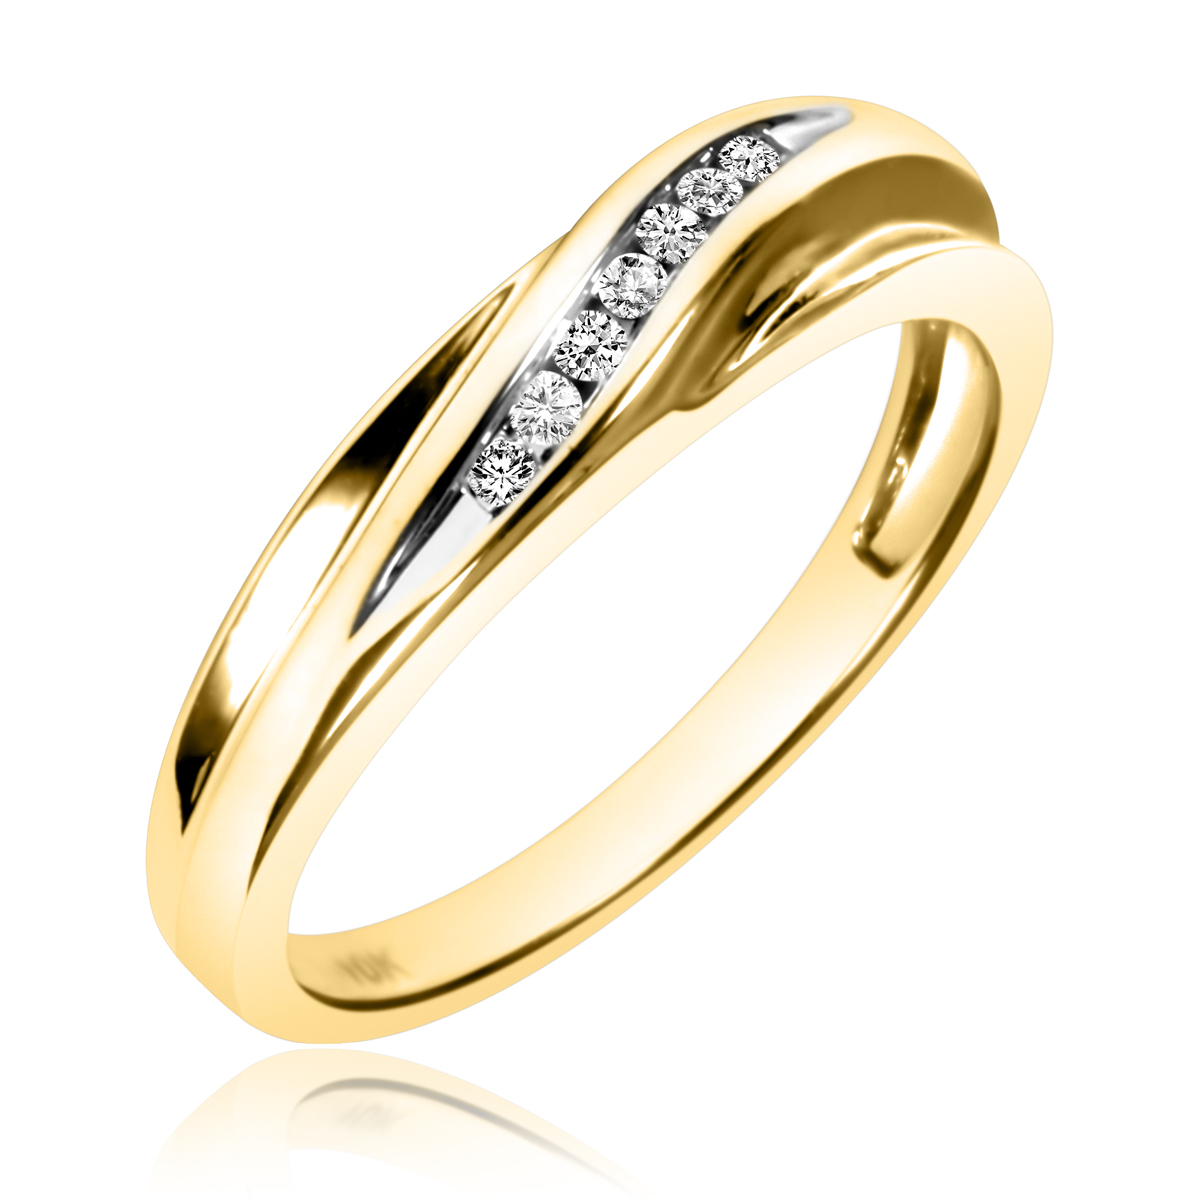 1/15 Carat T.W. Round Cut Diamond Ladies Wedding Band 14K Yellow Gold- Size 8